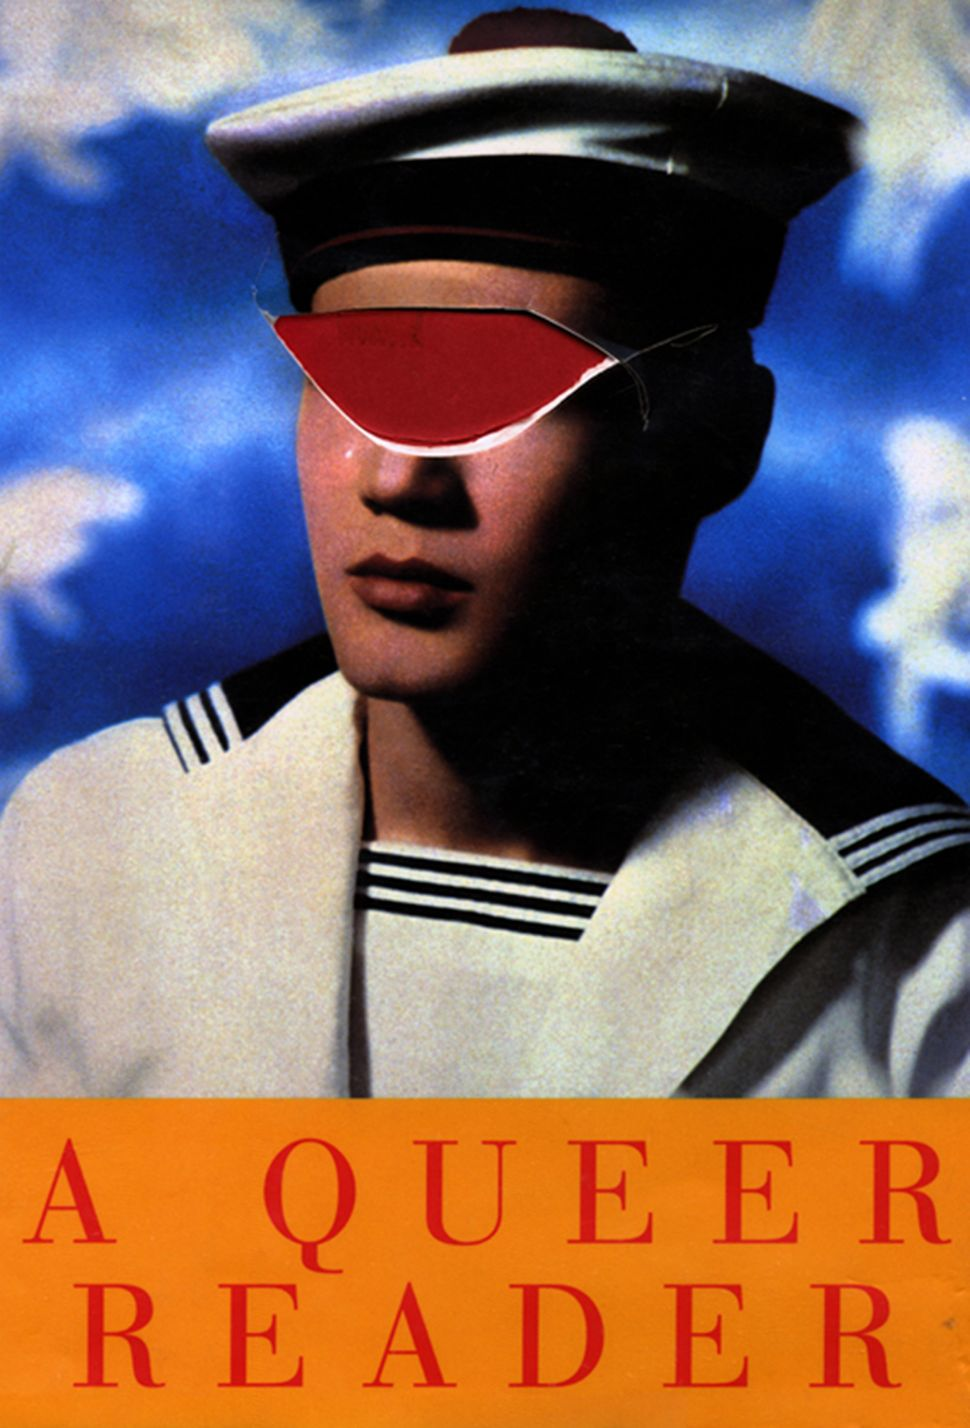 Harmony Hammond, A Queer Reader, 2010, Archival inkjet print on Museo Silver rag paper, mounted on Di-Bond with UV laminate,